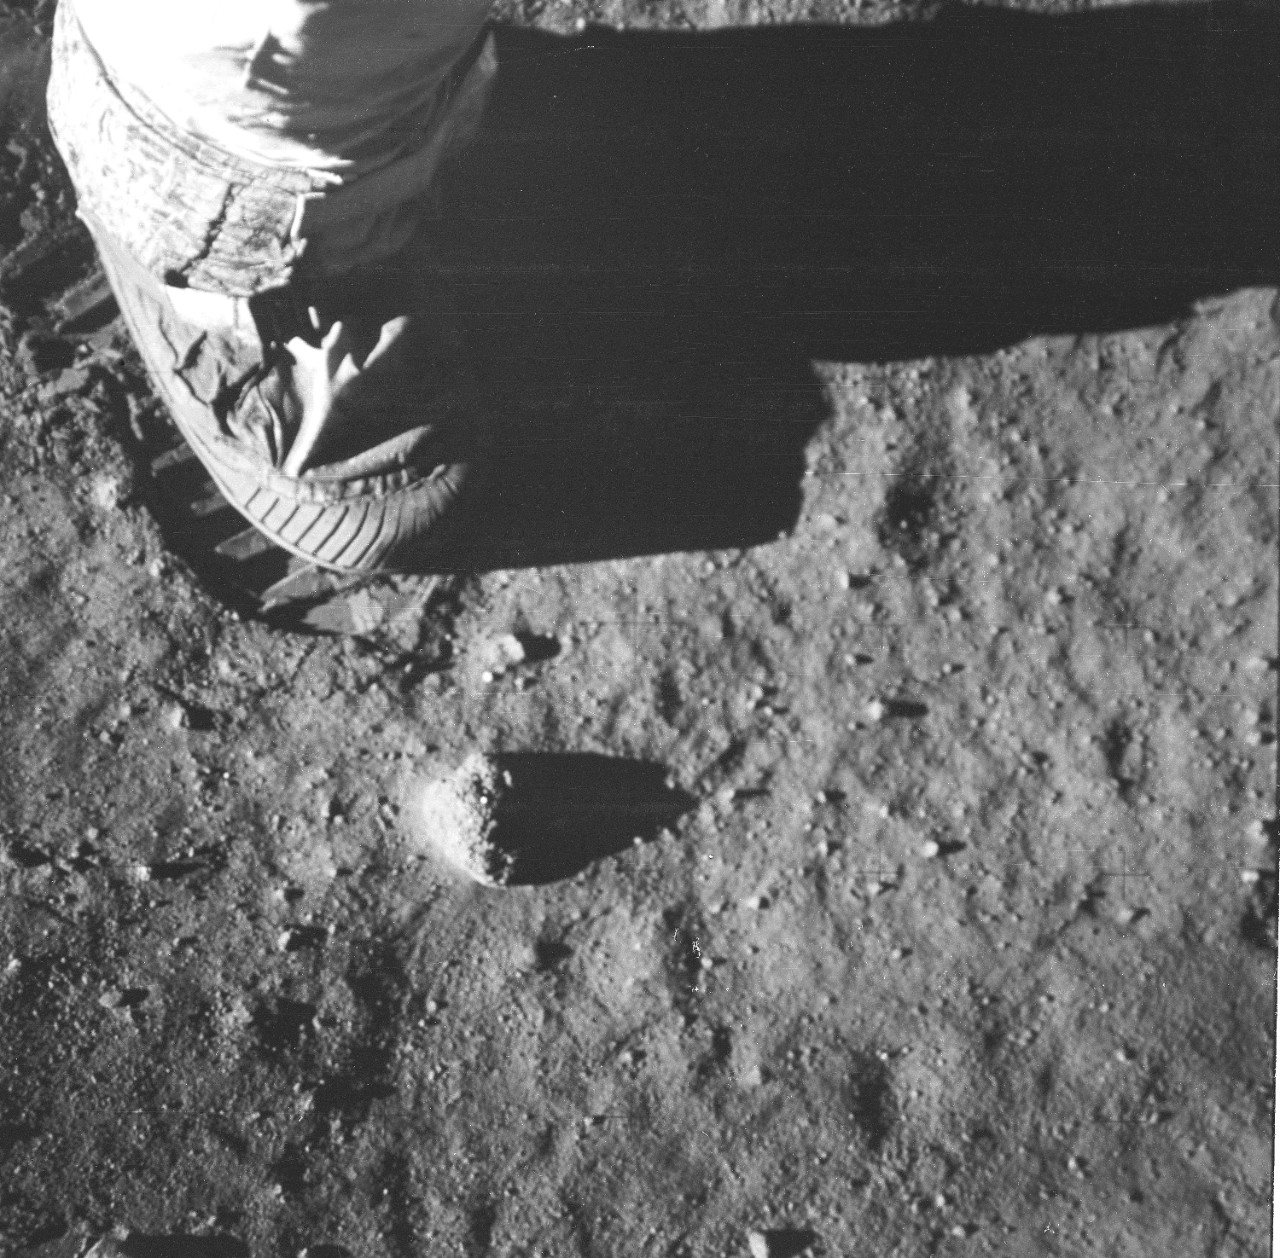 A black and white image of a spacesuit boot next to its footprint on the moon.